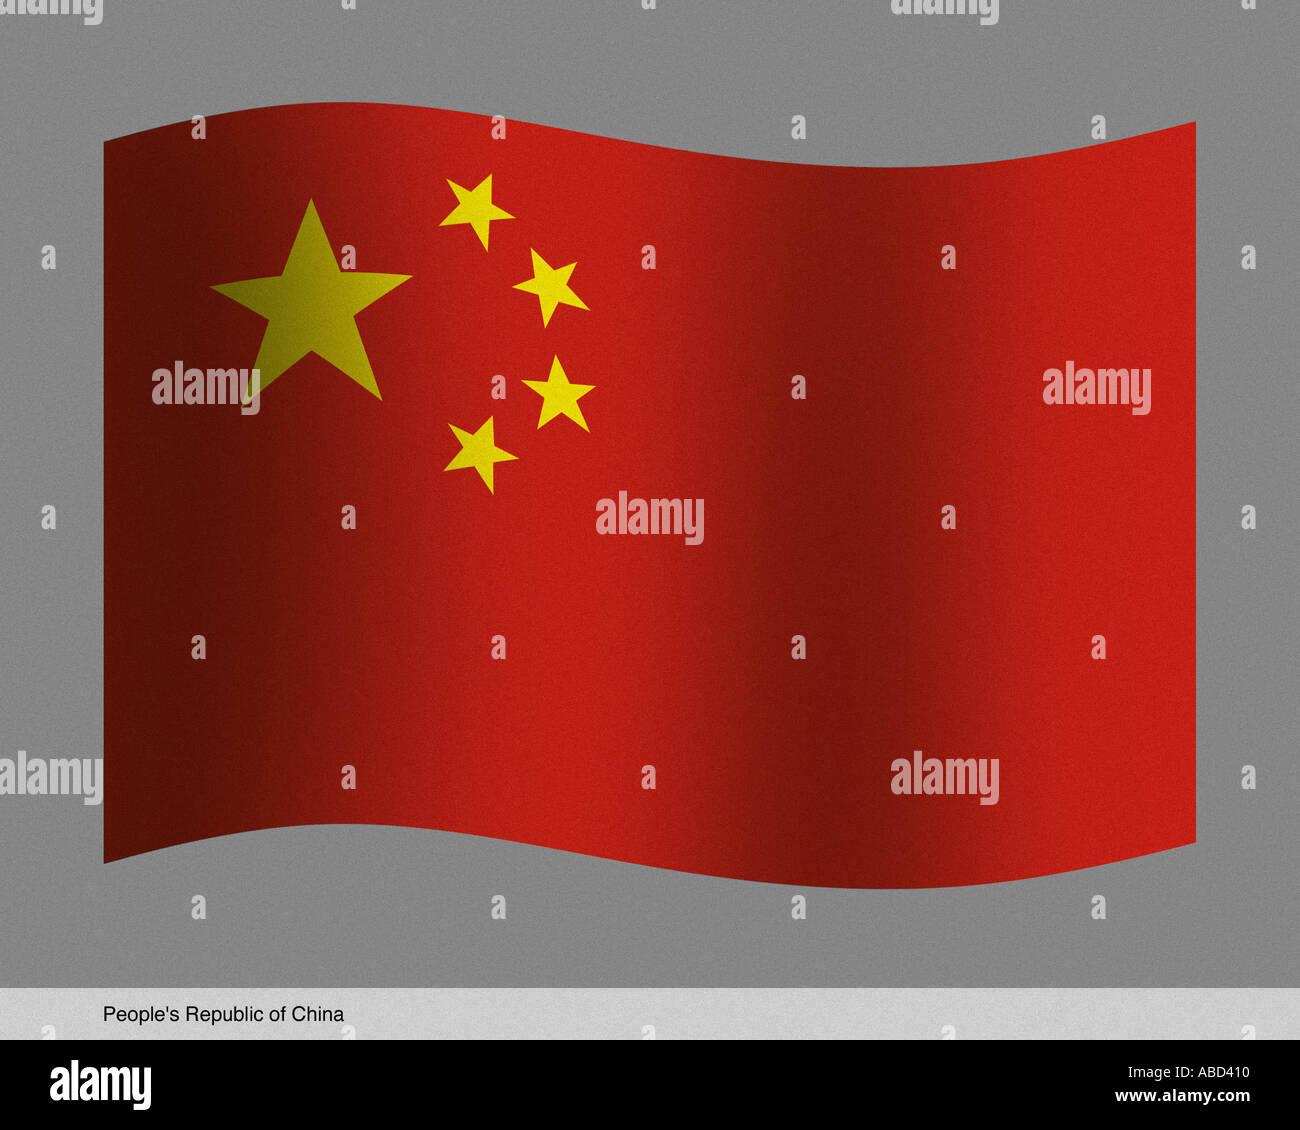 People's Republic of China - Stock Image